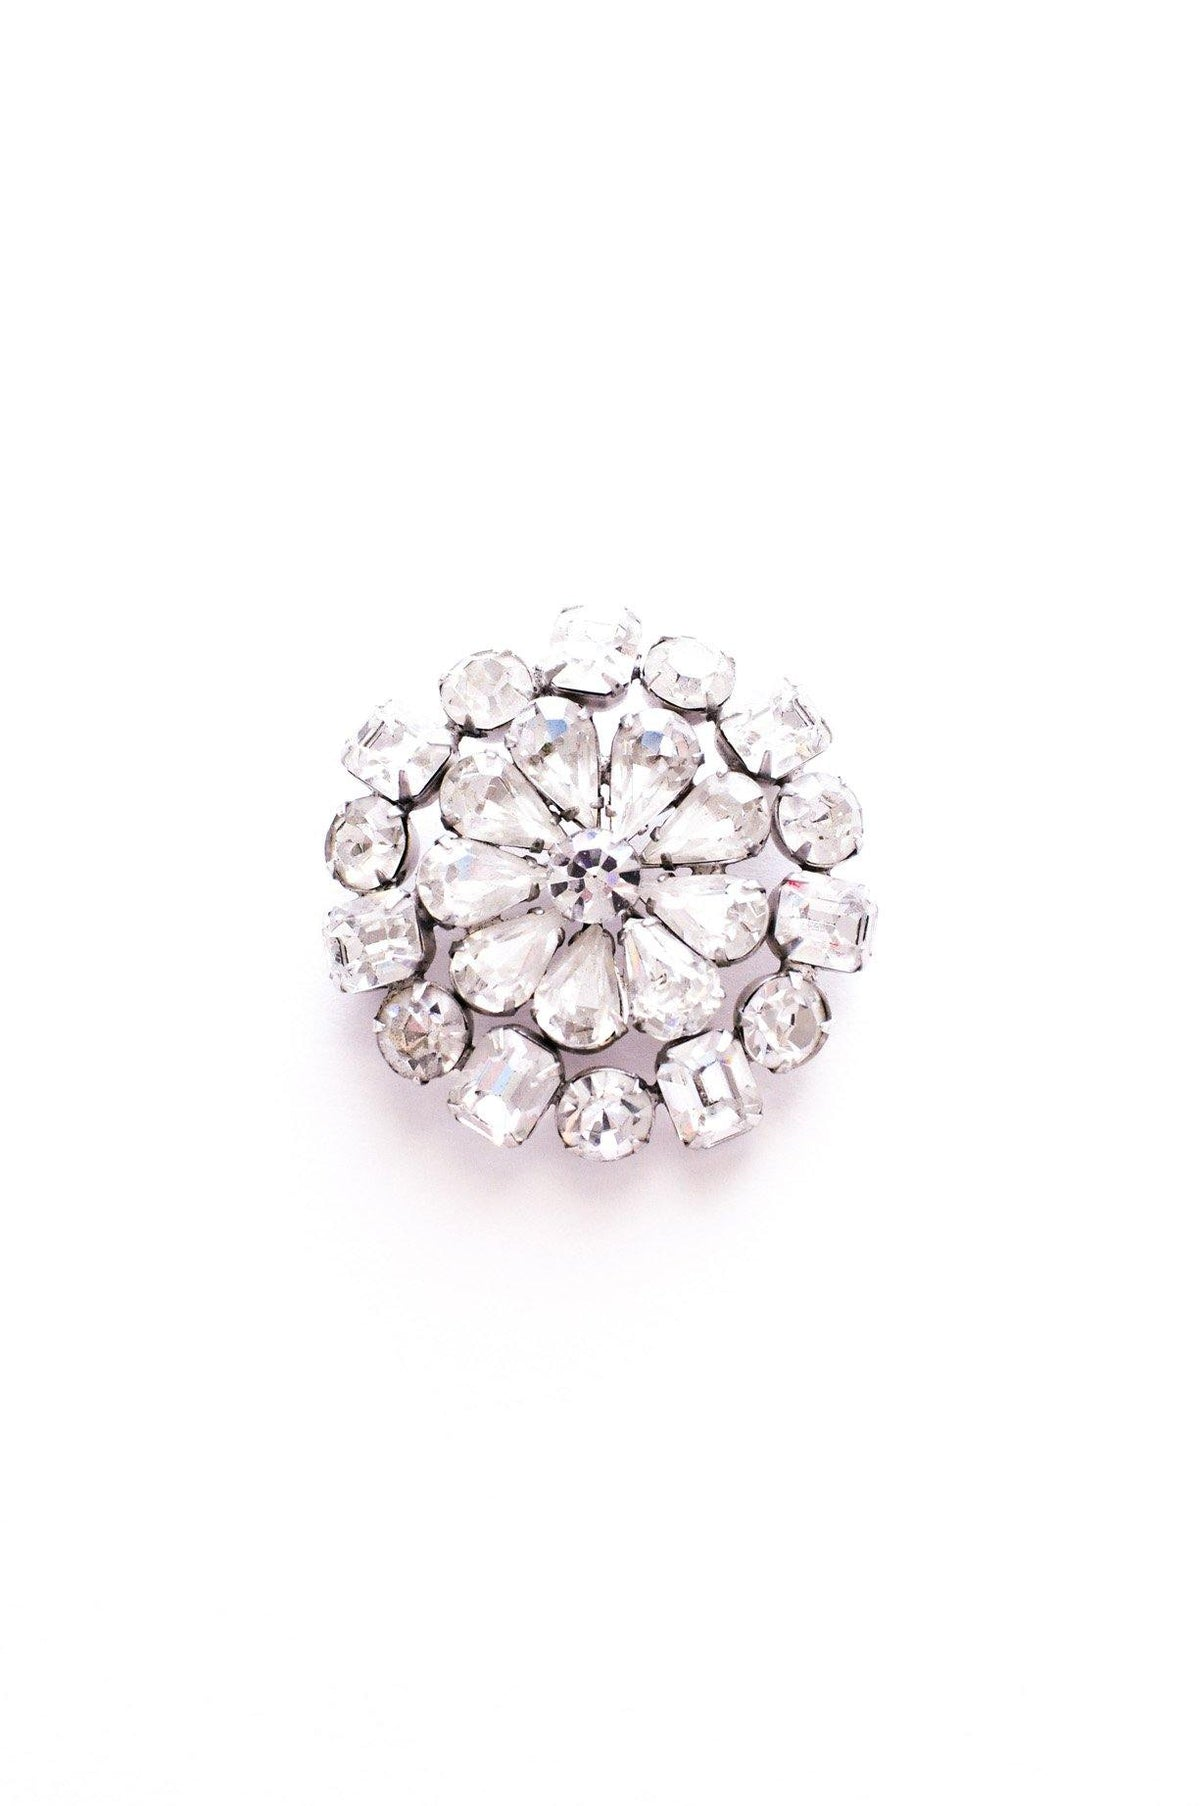 Vintage clear rhinestone floral brooch from Sweet & Spark.